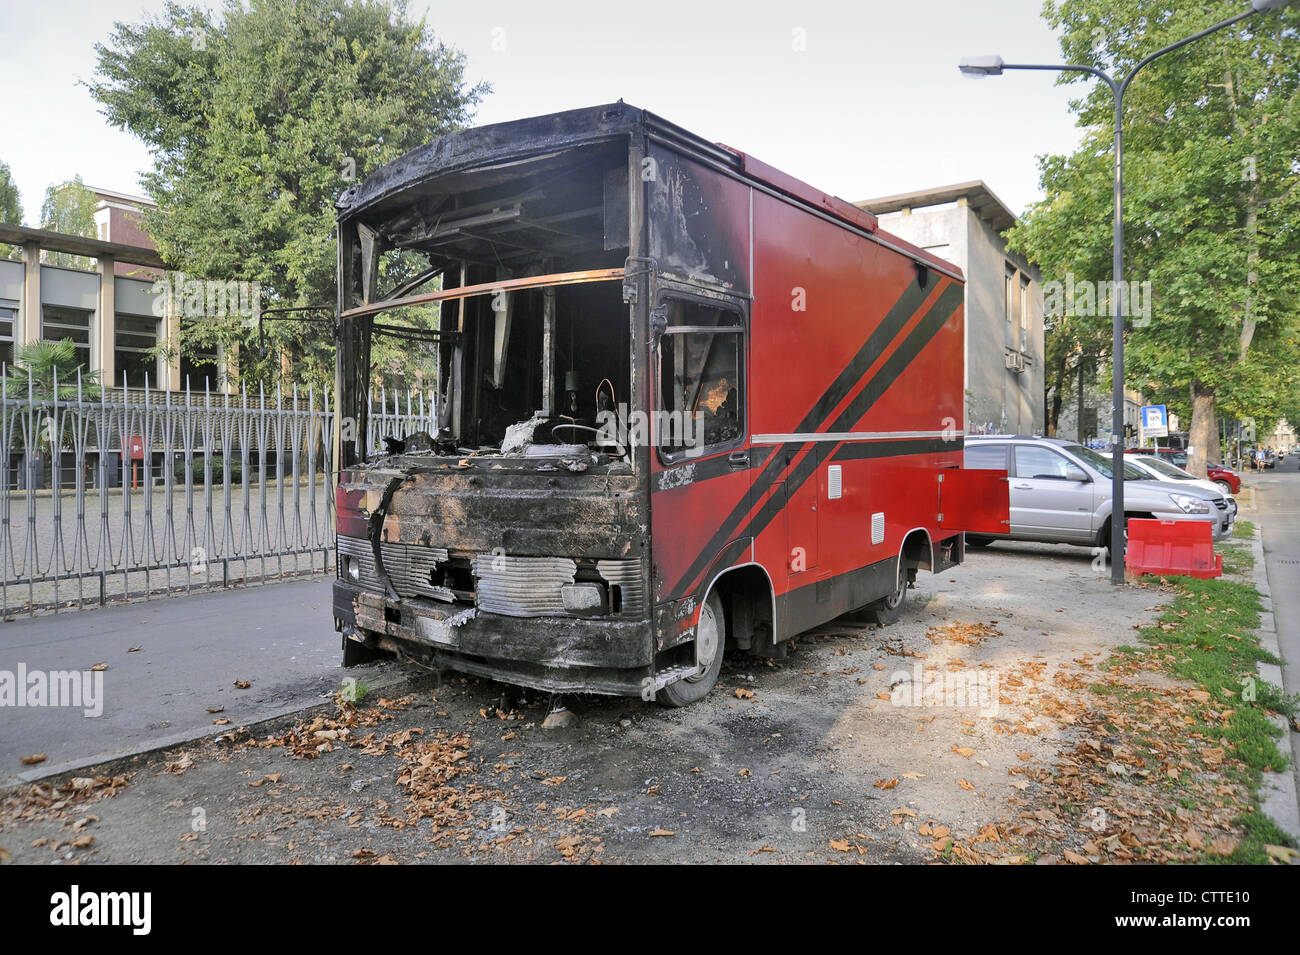 Milan, food truck destroyed by arson  because the owner had refused to pay 'protection money' to a Mafia - Stock Image